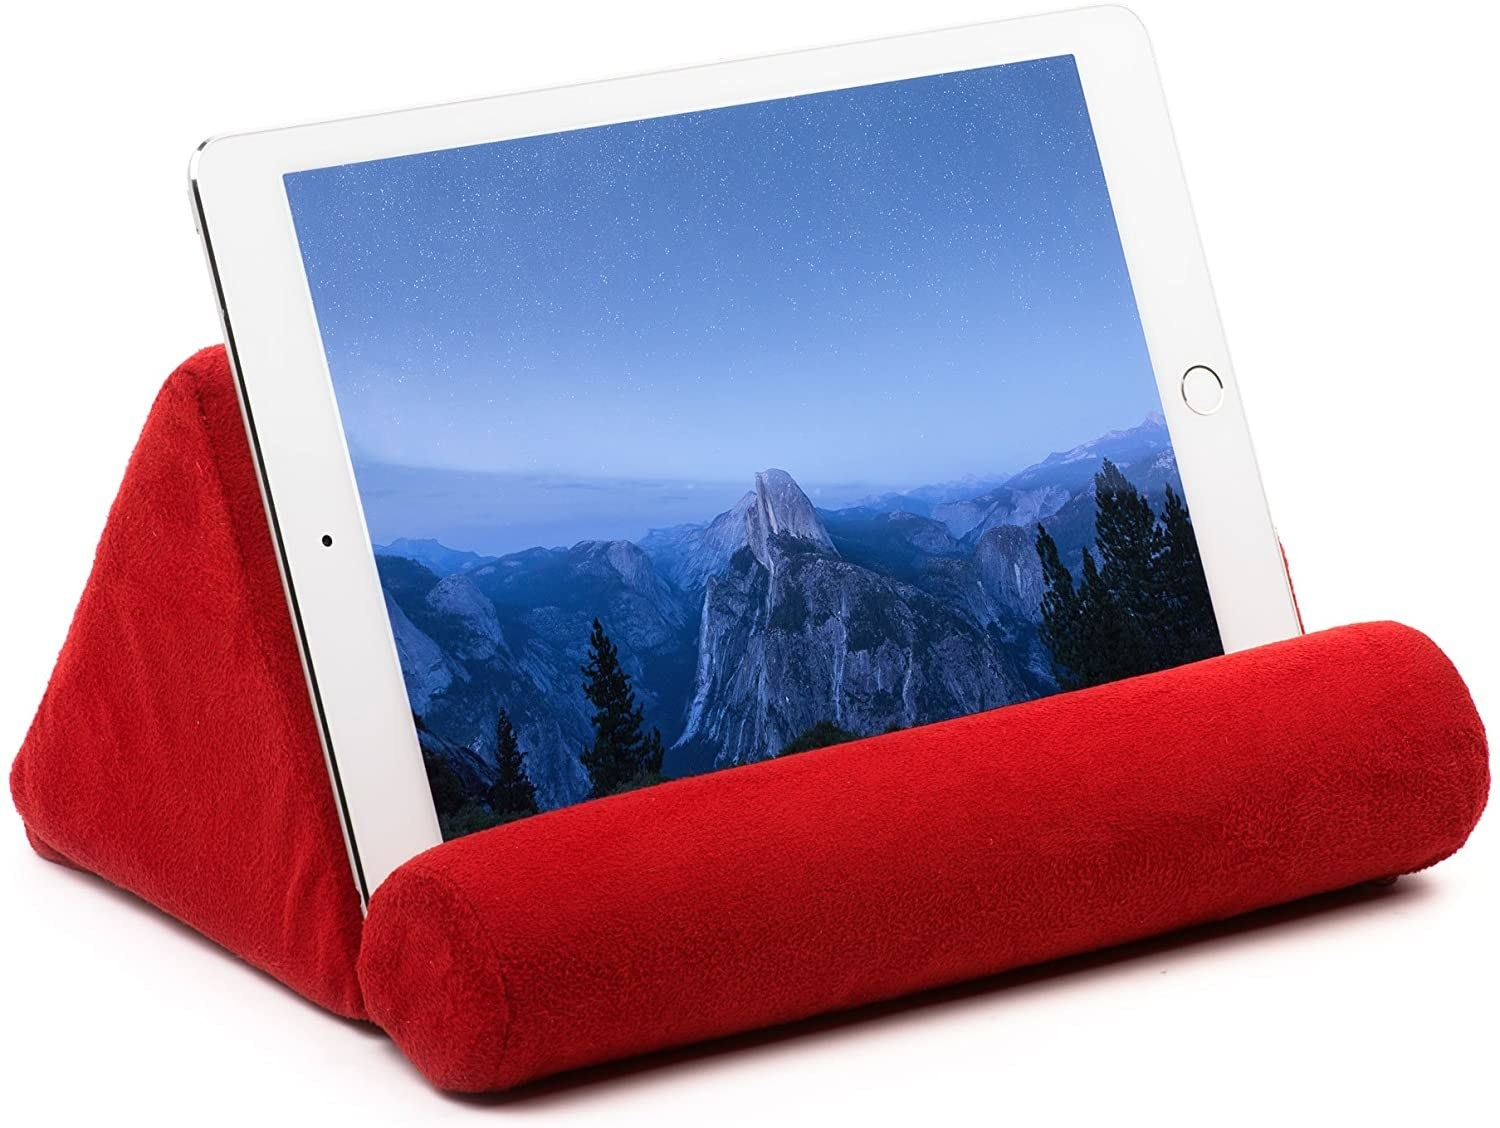 pillow that acts as a tablet or book stand